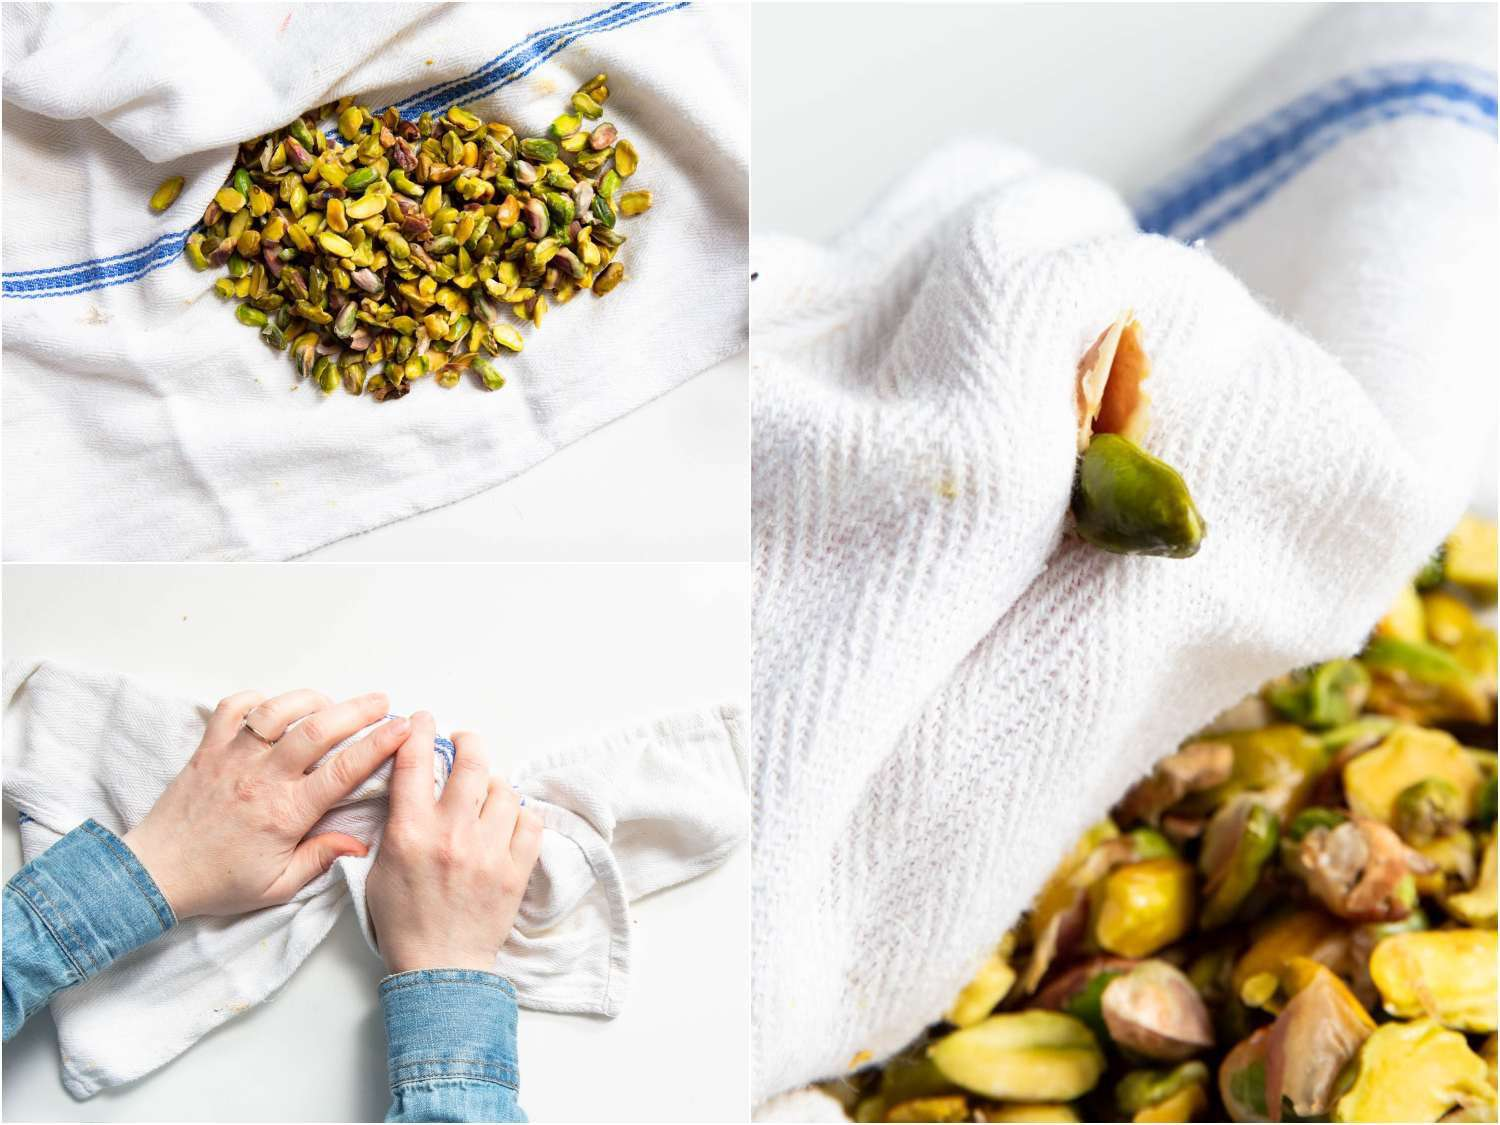 toweling off pistachios to loosen the skin